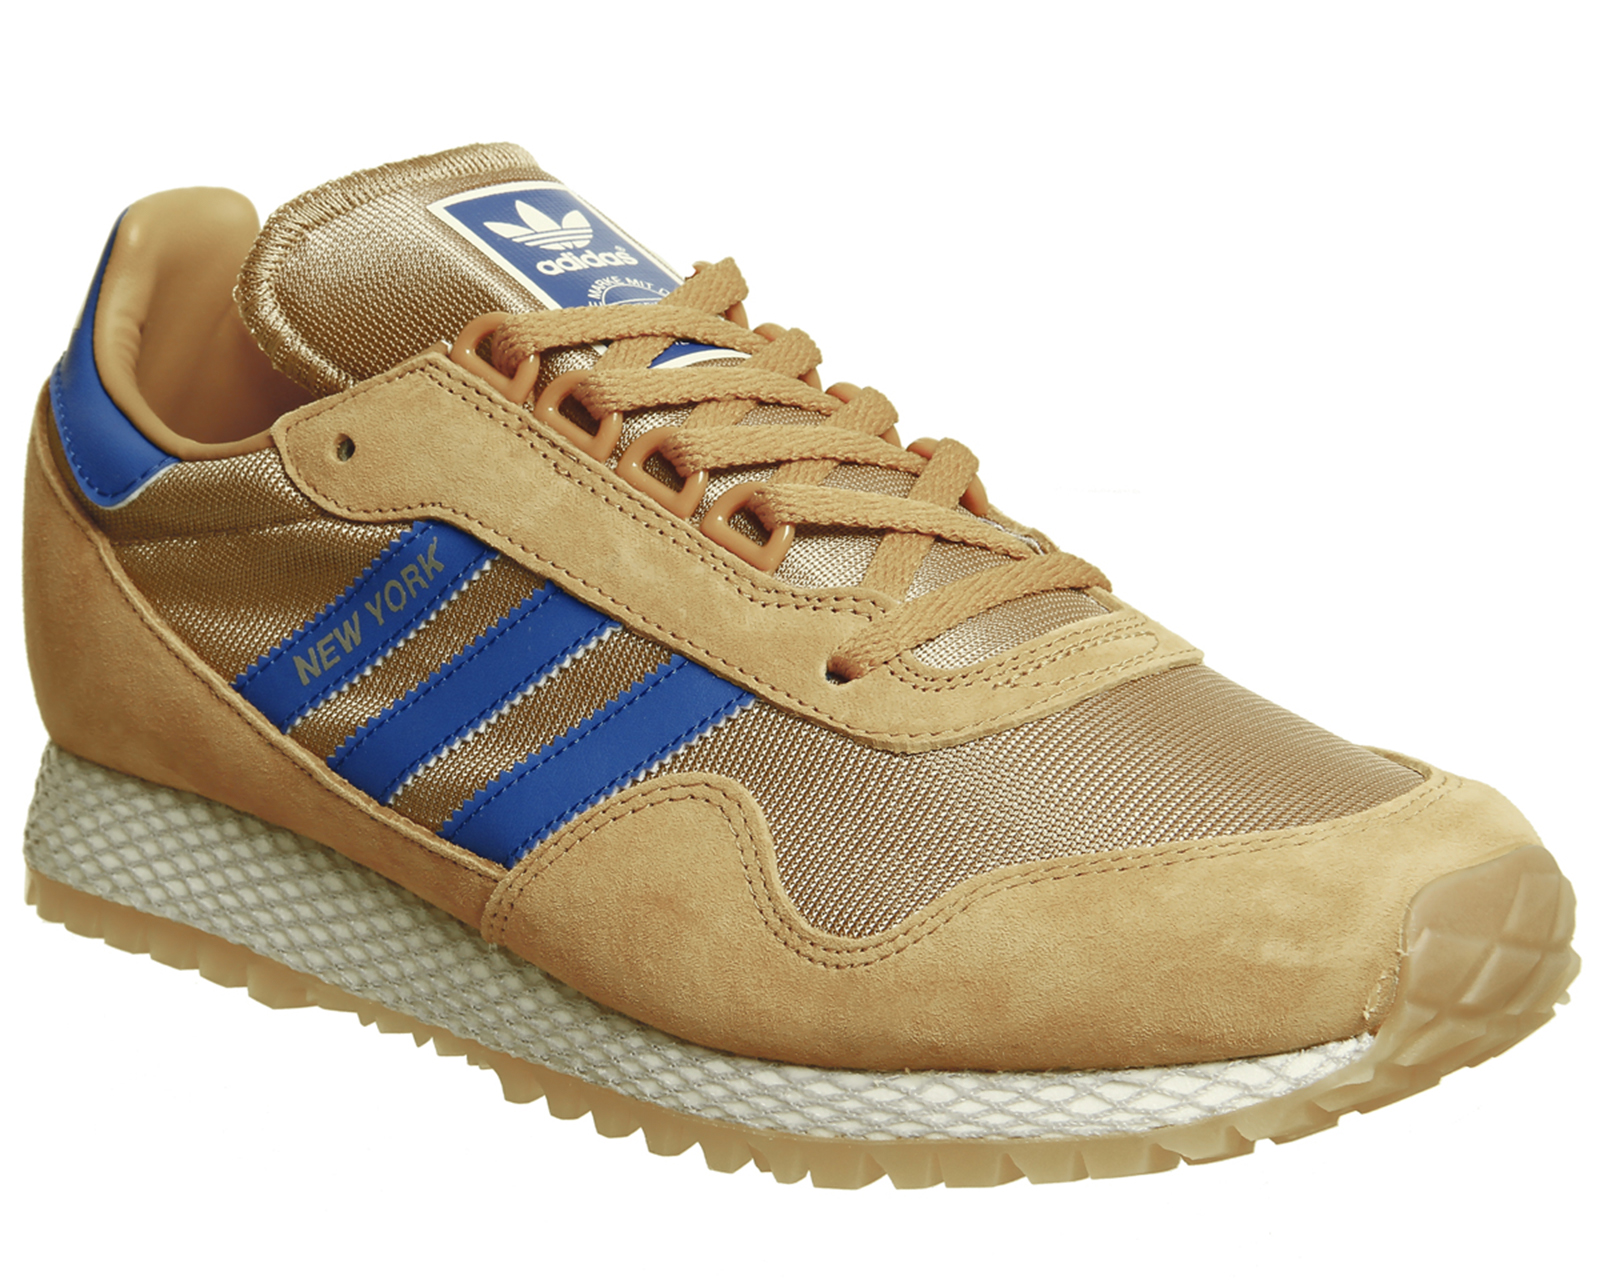 check out 9a688 01457 Sentinel Adidas New York Trainers MESA CARDBOARD GUM Trainers Shoes.  Sentinel Thumbnail 2